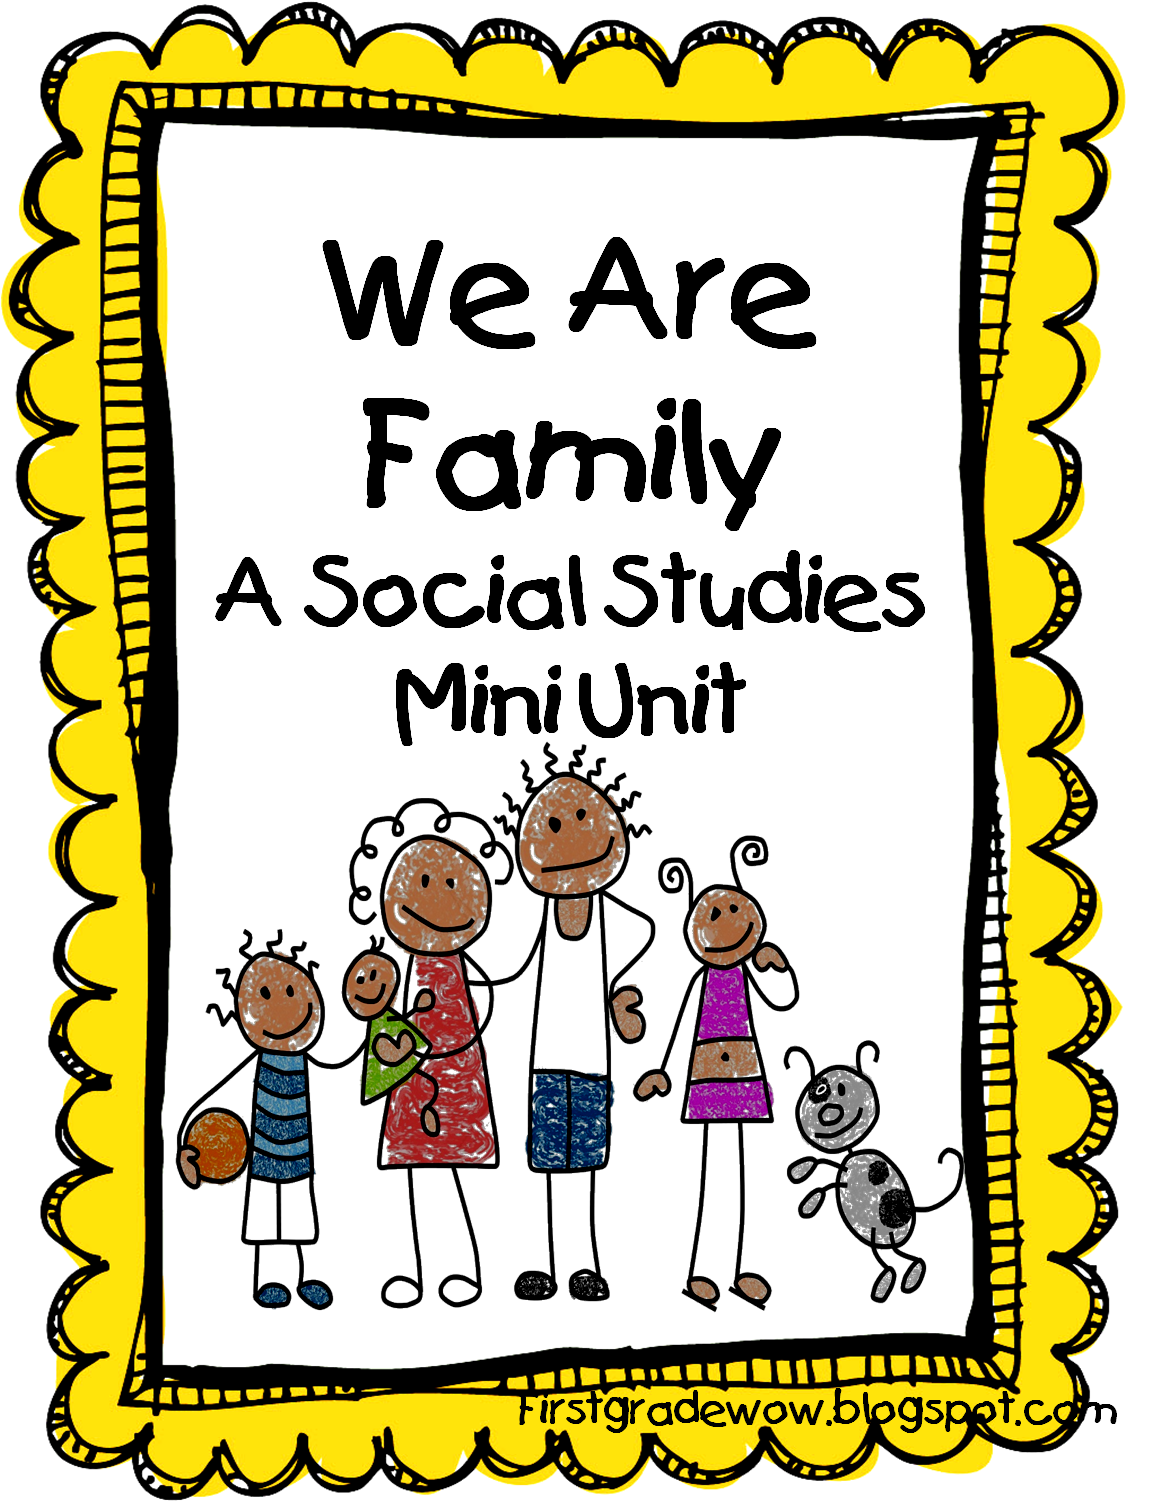 my family essay for class 4 Here you'll find 50 descriptive essay topics to help generate writing ideas topics are grouped by people, places, objects and memories click here.